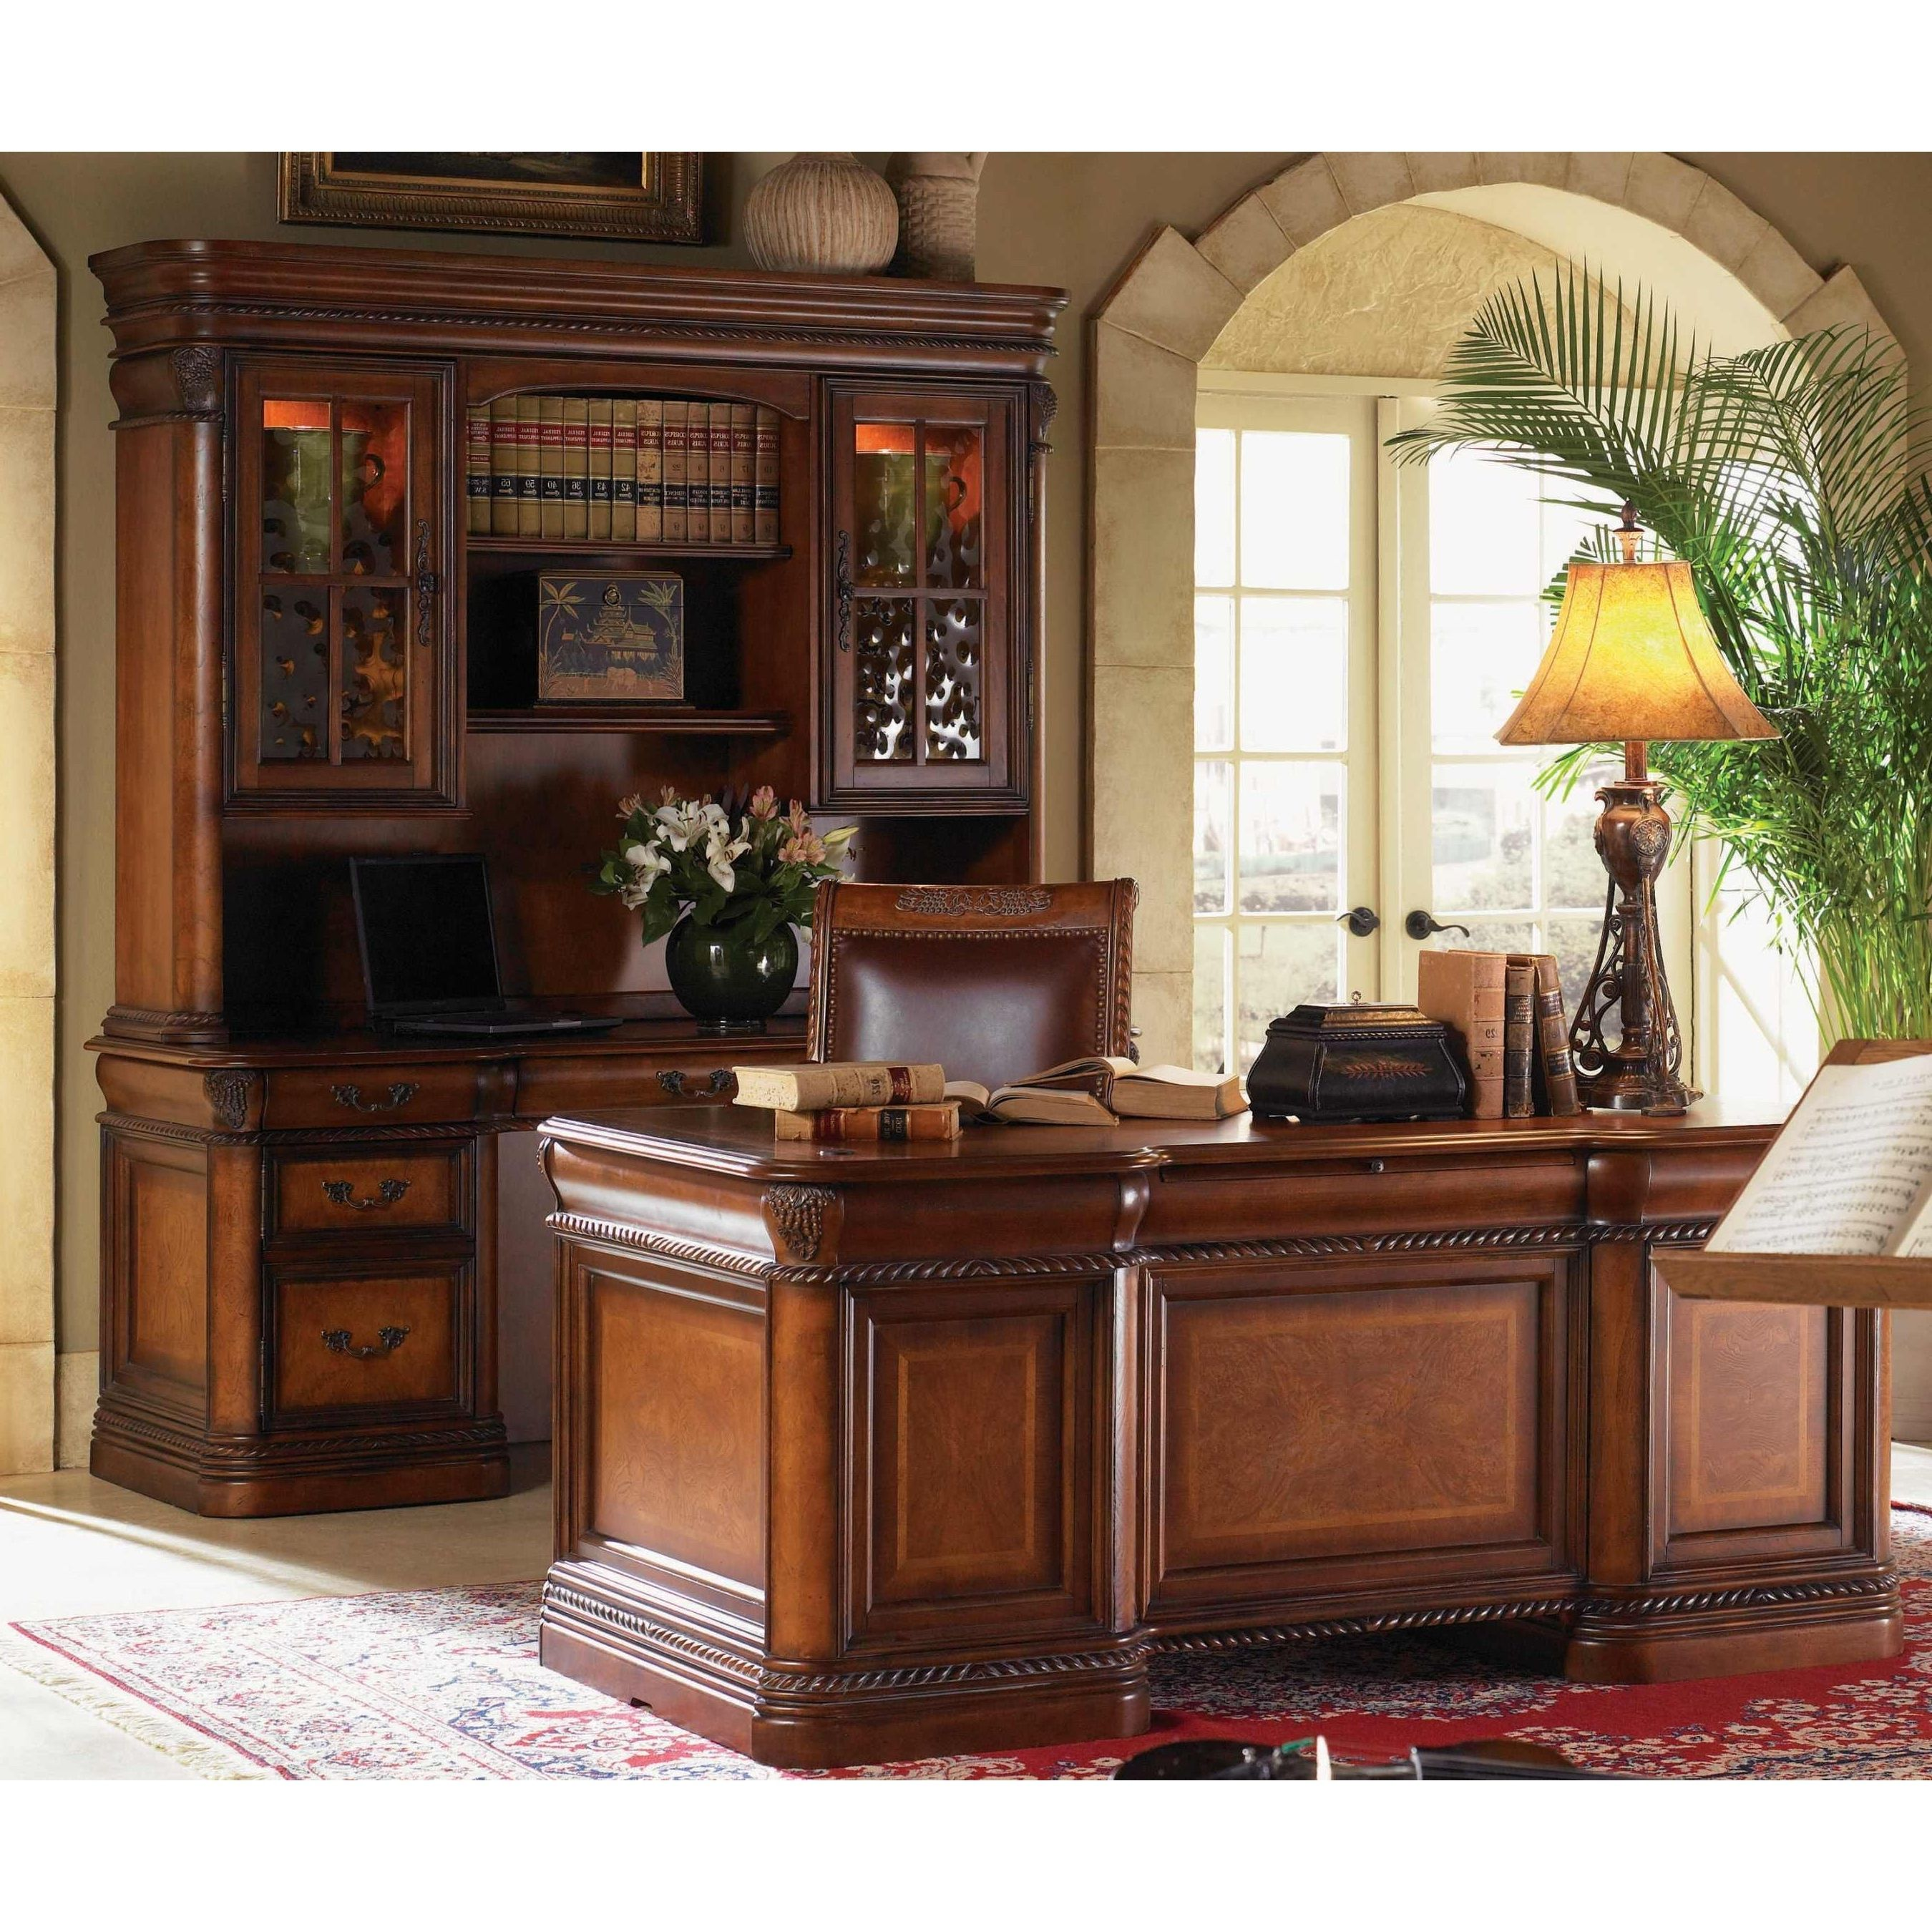 Charmant Luxury Office Furniture | Home Office : Furniture Luxury Home Office Desk  And Chair Also .